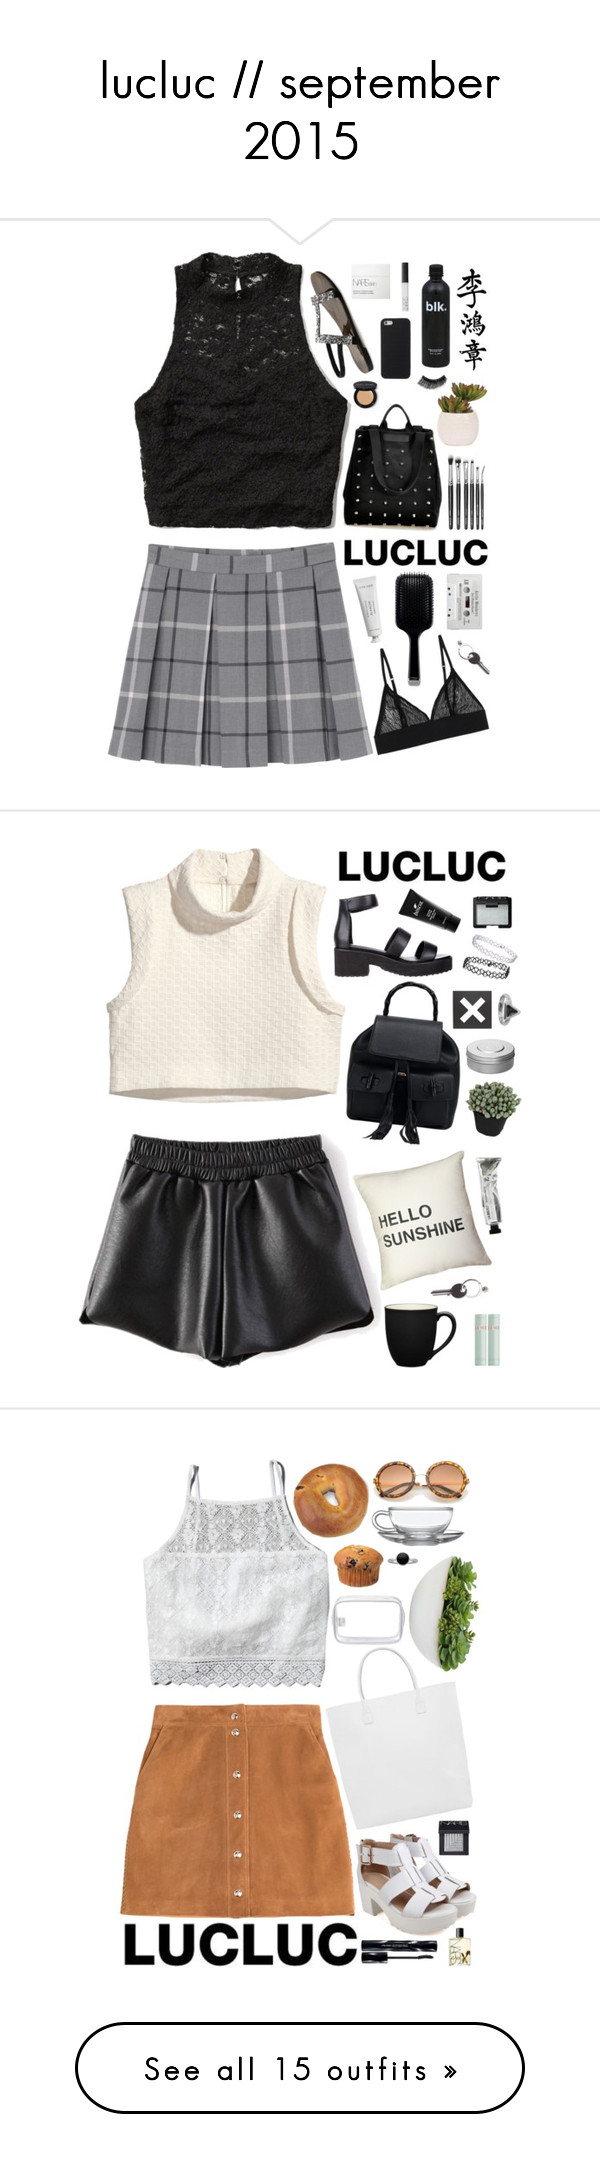 """""""lucluc // september 2015"""" by kristenkubek22 ❤ liked on Polyvore featuring Abercrombie & Fitch, Monki, NARS Cosmetics, GHD, Byredo, Bobbi Brown Cosmetics, eylure, Lux-Art Silks, Maison Margiela and lucluc"""